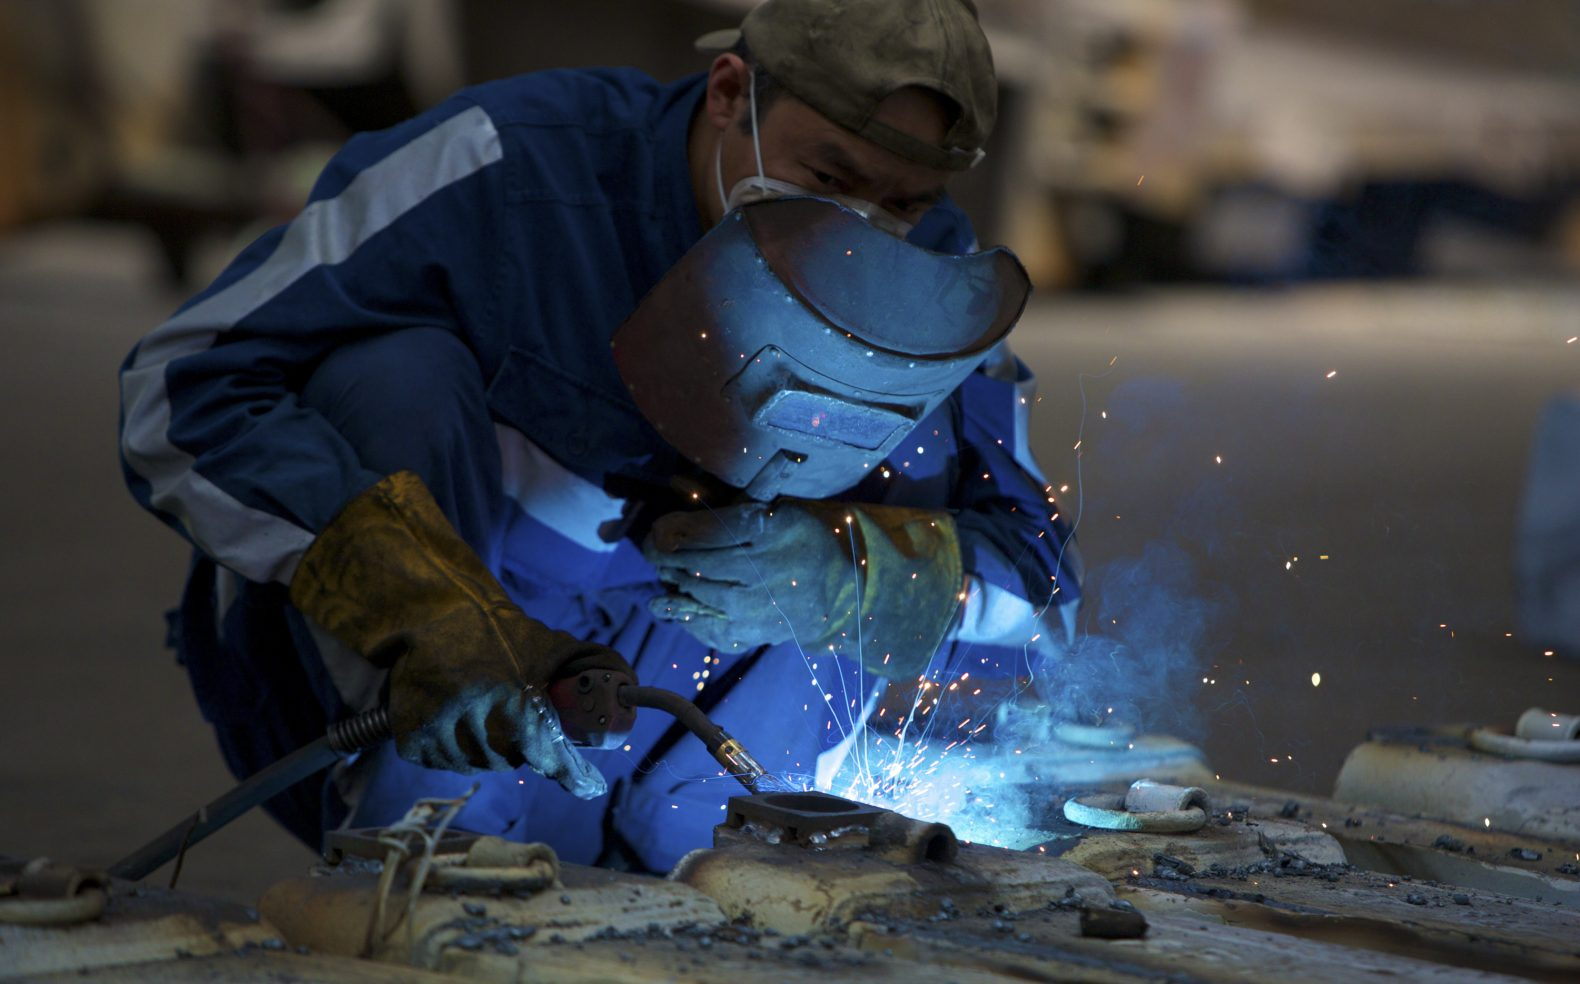 Professional photograph of a manufacturing employee welding in a facility with machinery in one hand and a face cover in the other hand